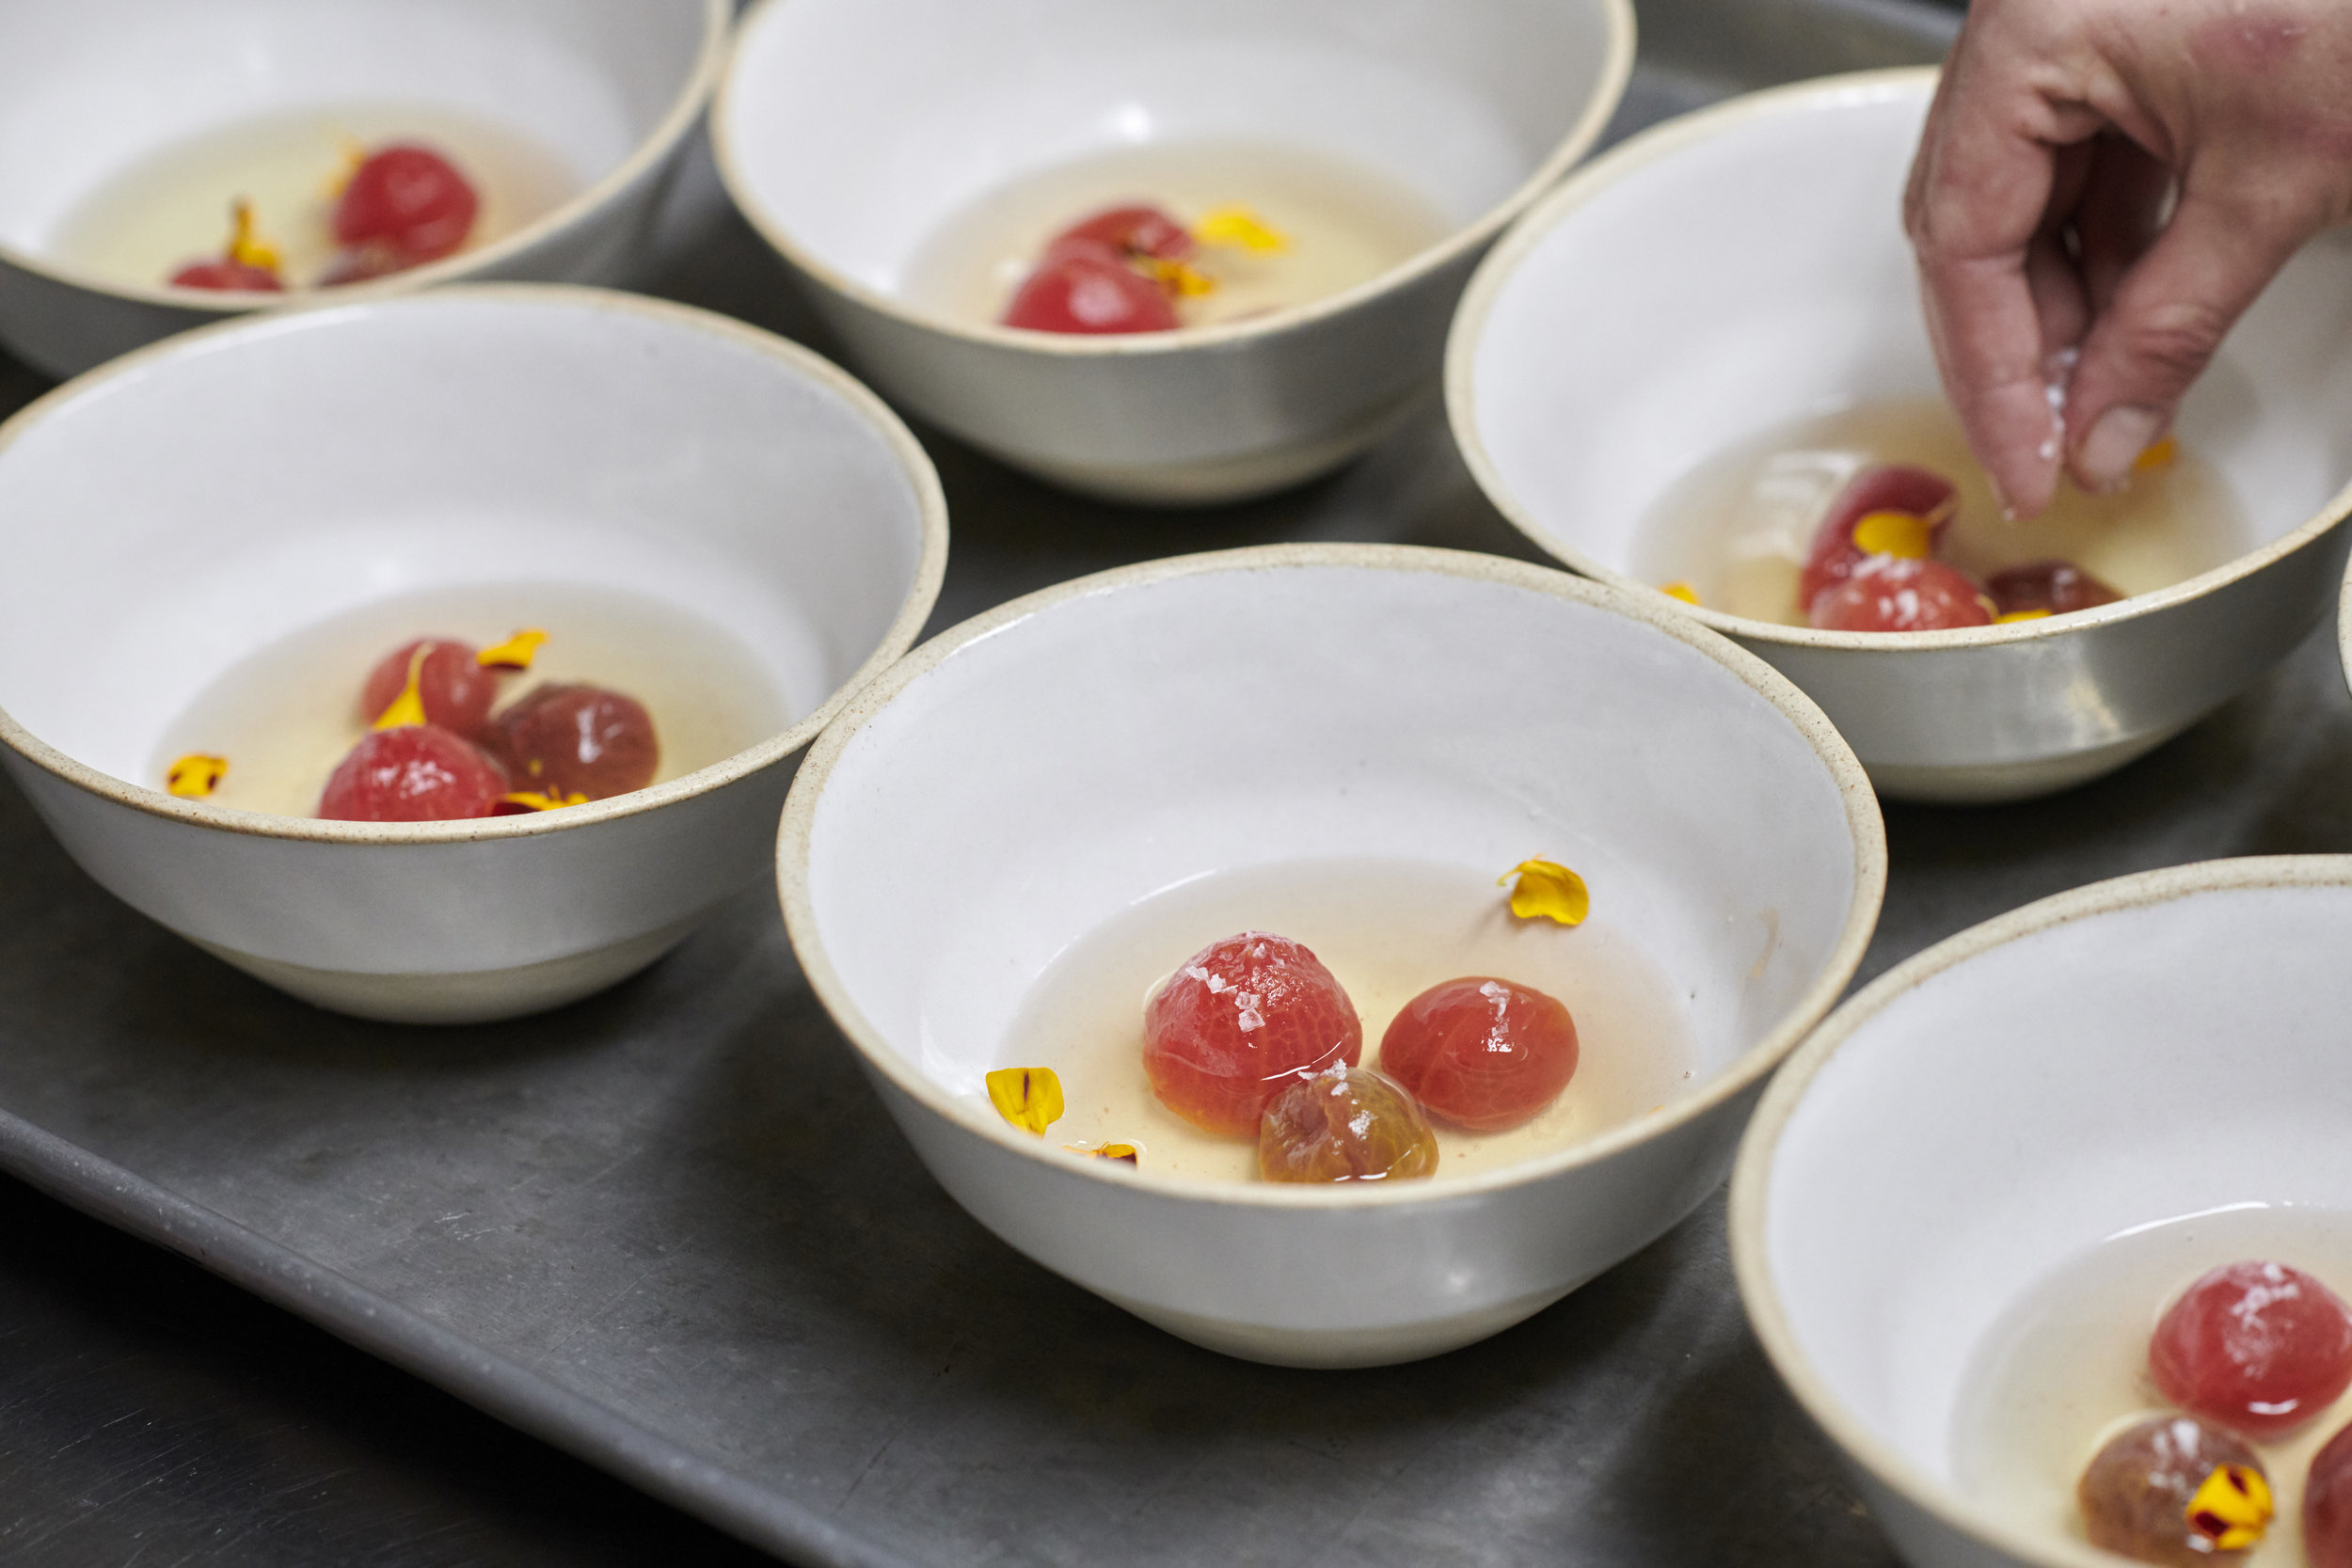 Tomato and Melon Gazpacho with dried heirloom tomato at Café Sebastienne. Photo by Kenny Johnson